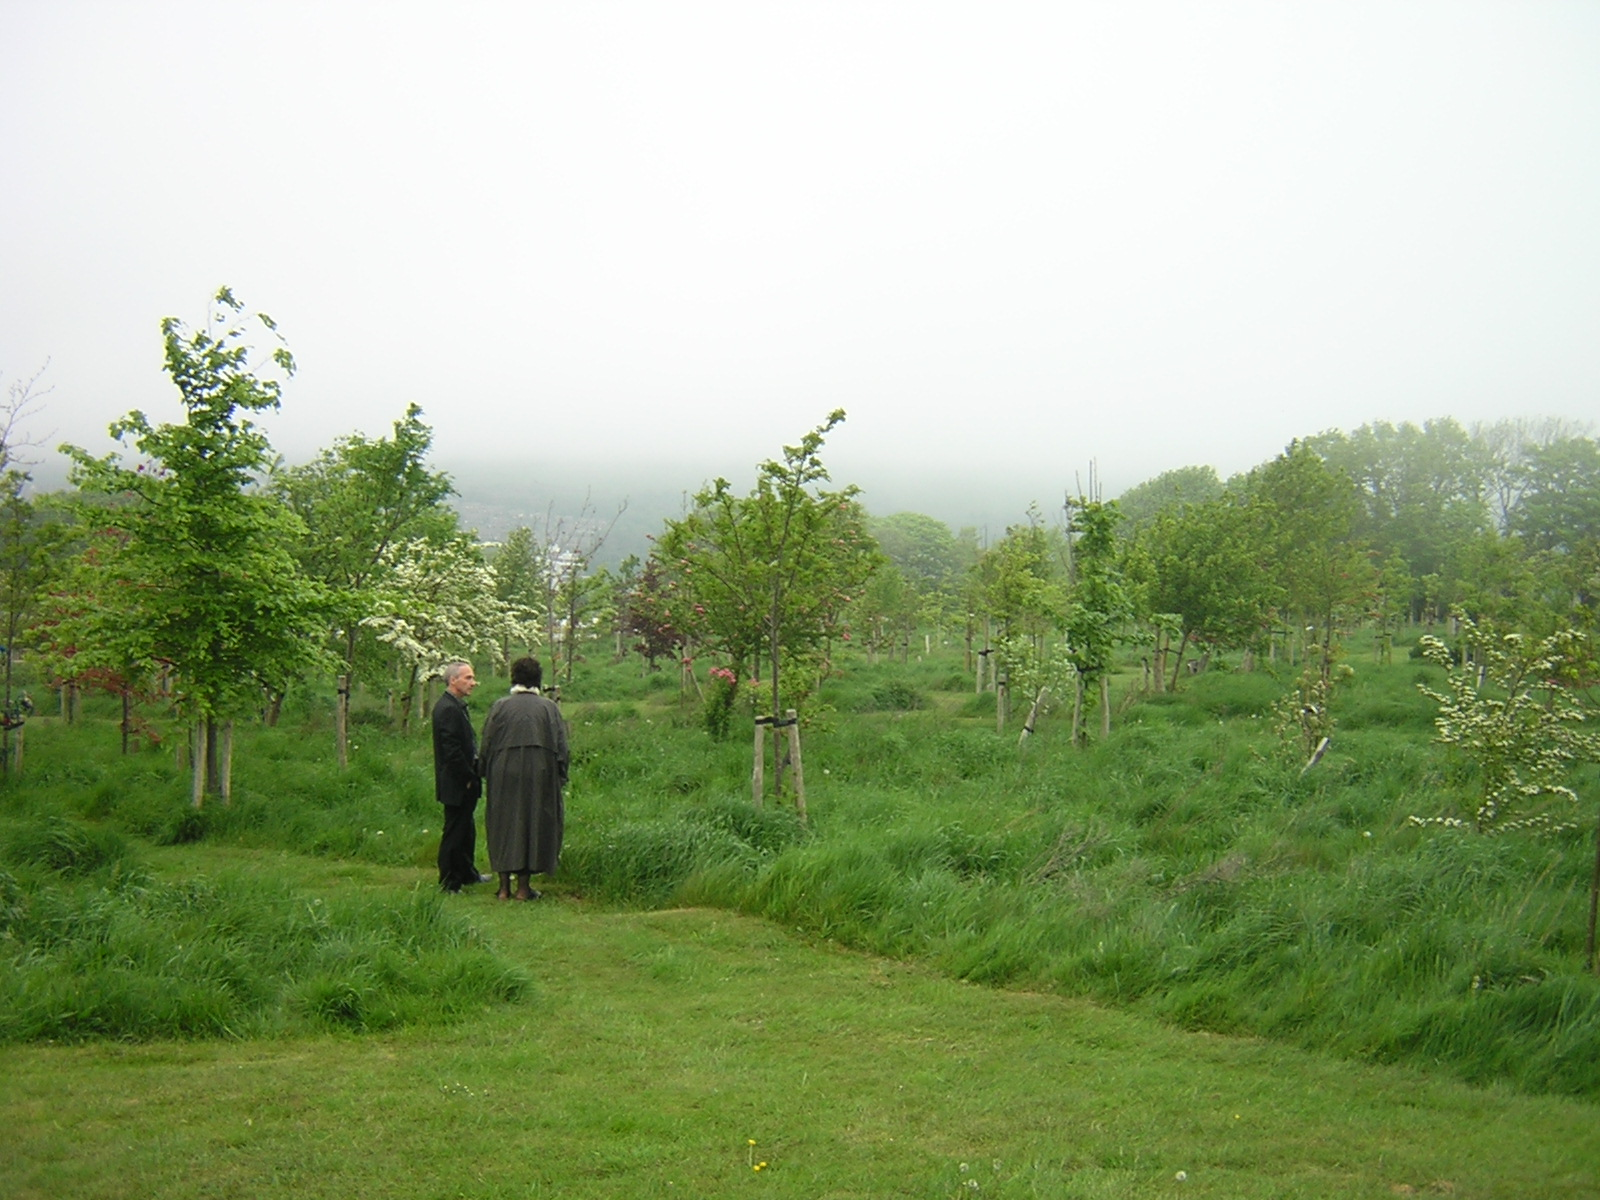 Be a tree the natural burial guide for turning yourself into a woodvales conventional cemetery conversion in brighton hove solutioingenieria Images